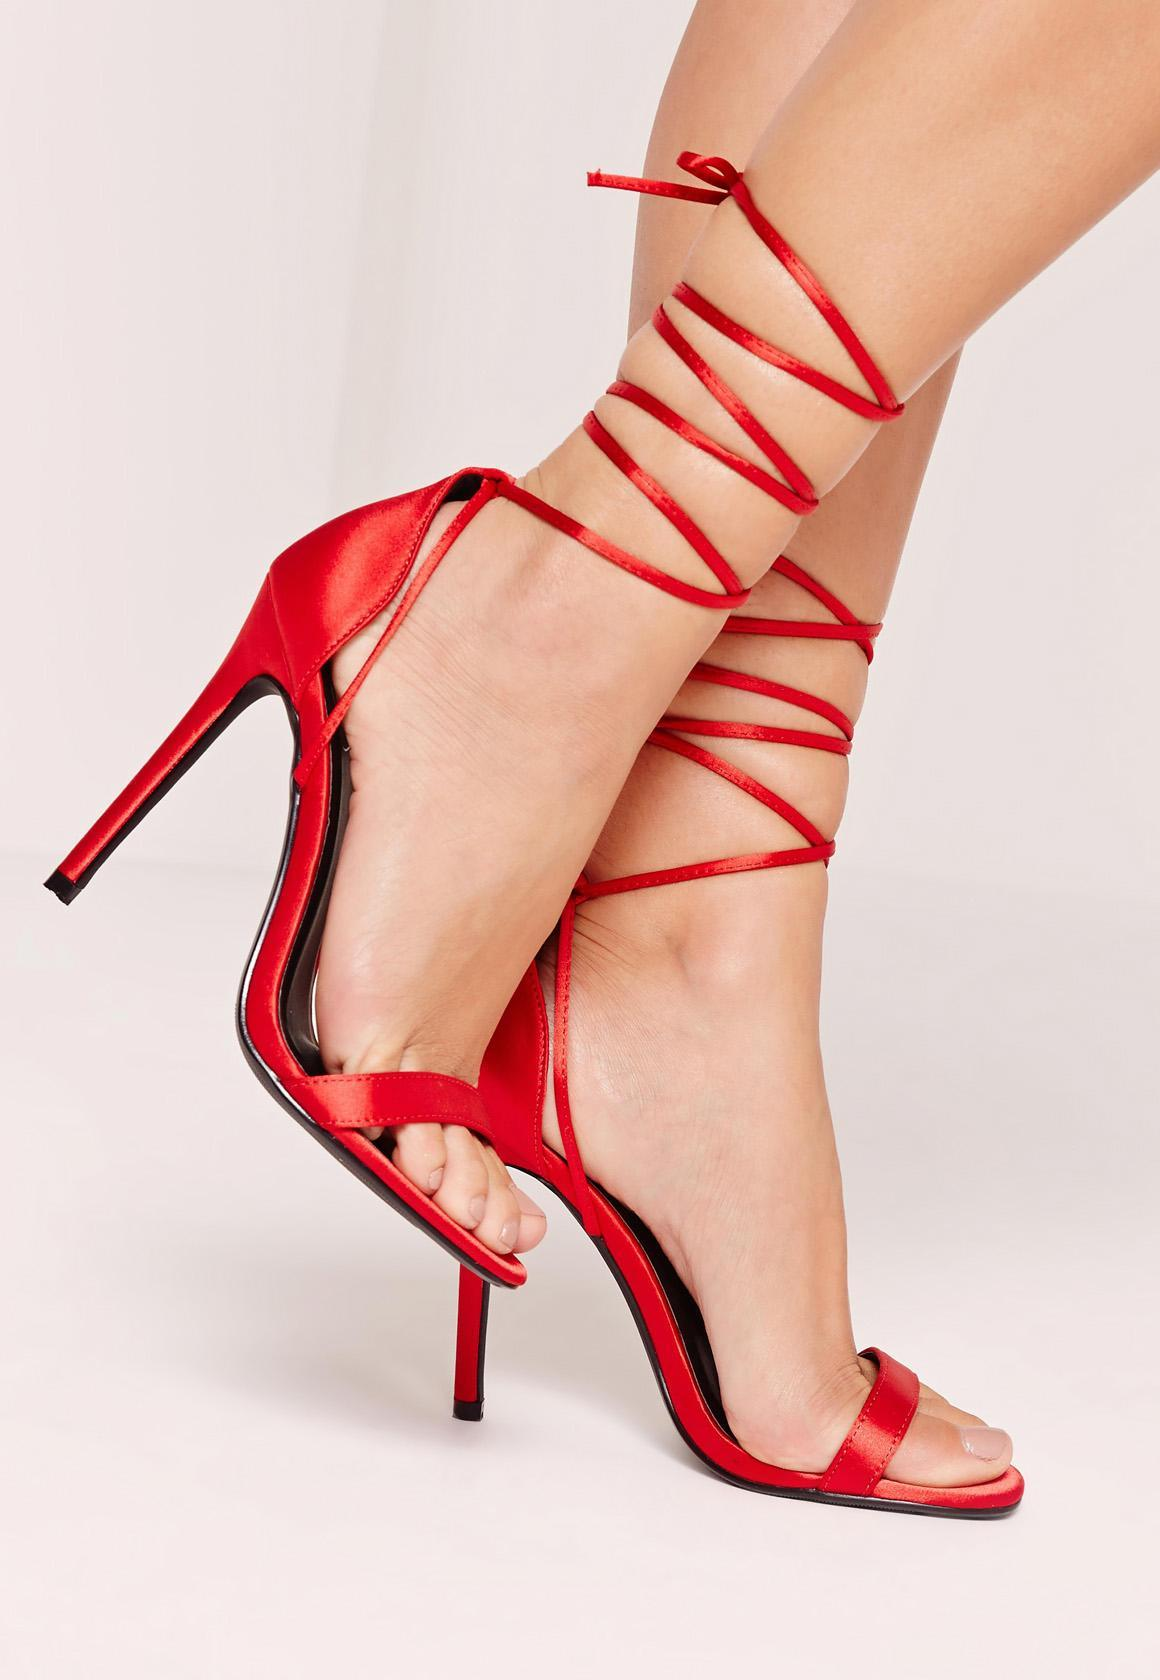 Missguided Lace Up Satin Barely There Heels Red in Red | Lyst